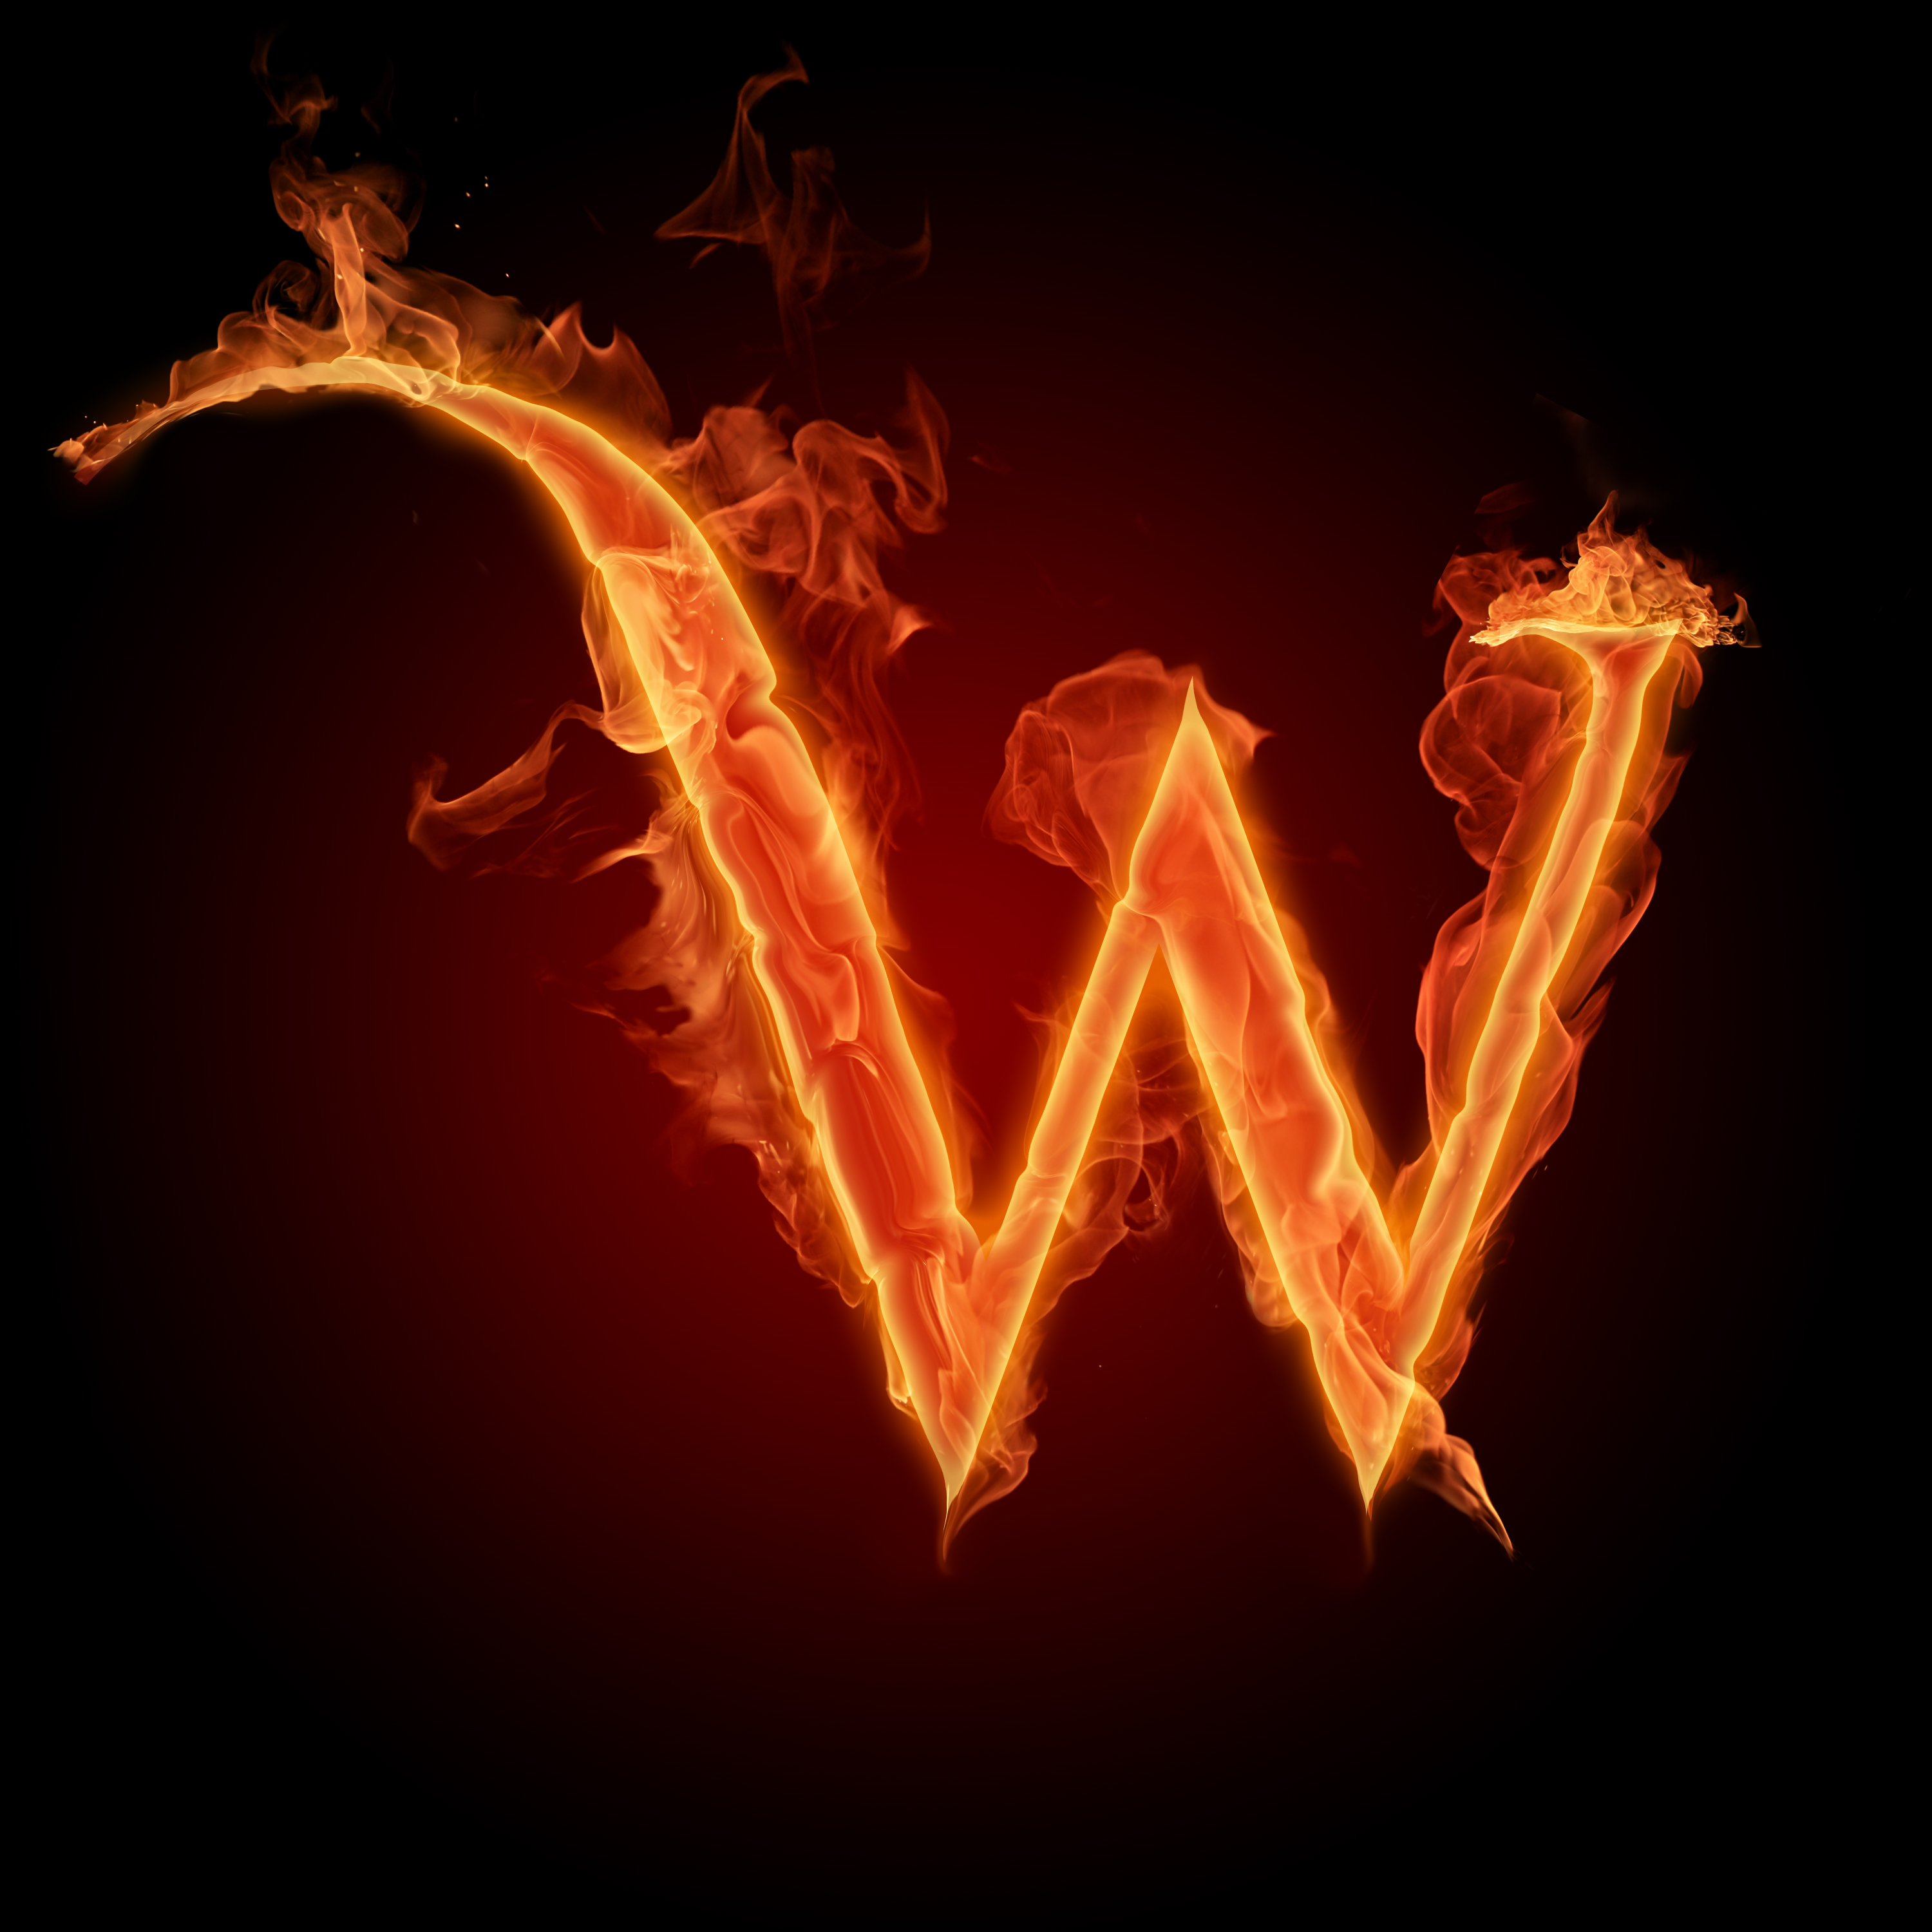 Fire Letters Wallpapers HD 3000X3000 S Z   Photo 6 of 8 phombocom 3000x3000